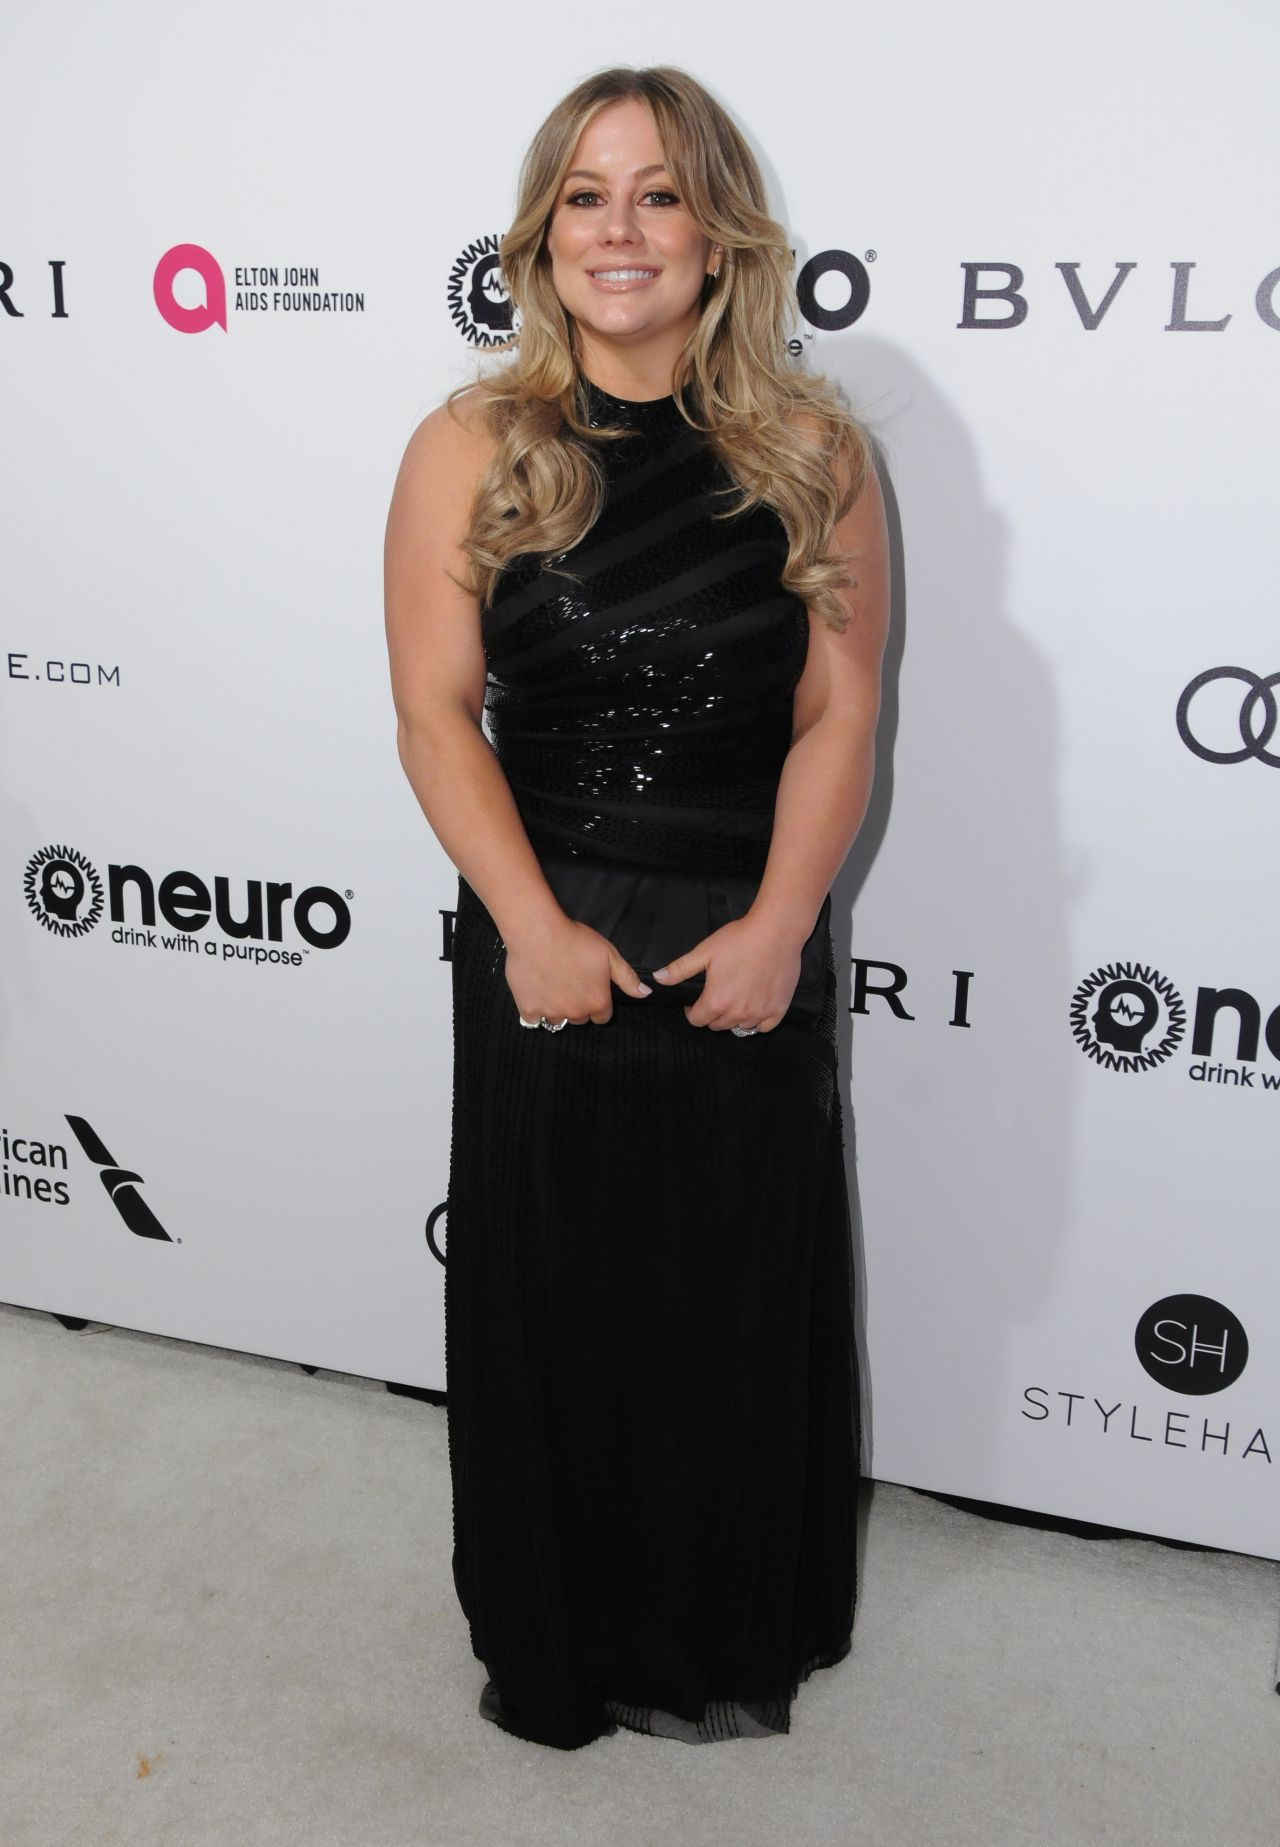 Kia South Miami >> Shawn Johnson at Elton John AIDS Foundation Academy Awards 2017 Viewing Party in LA